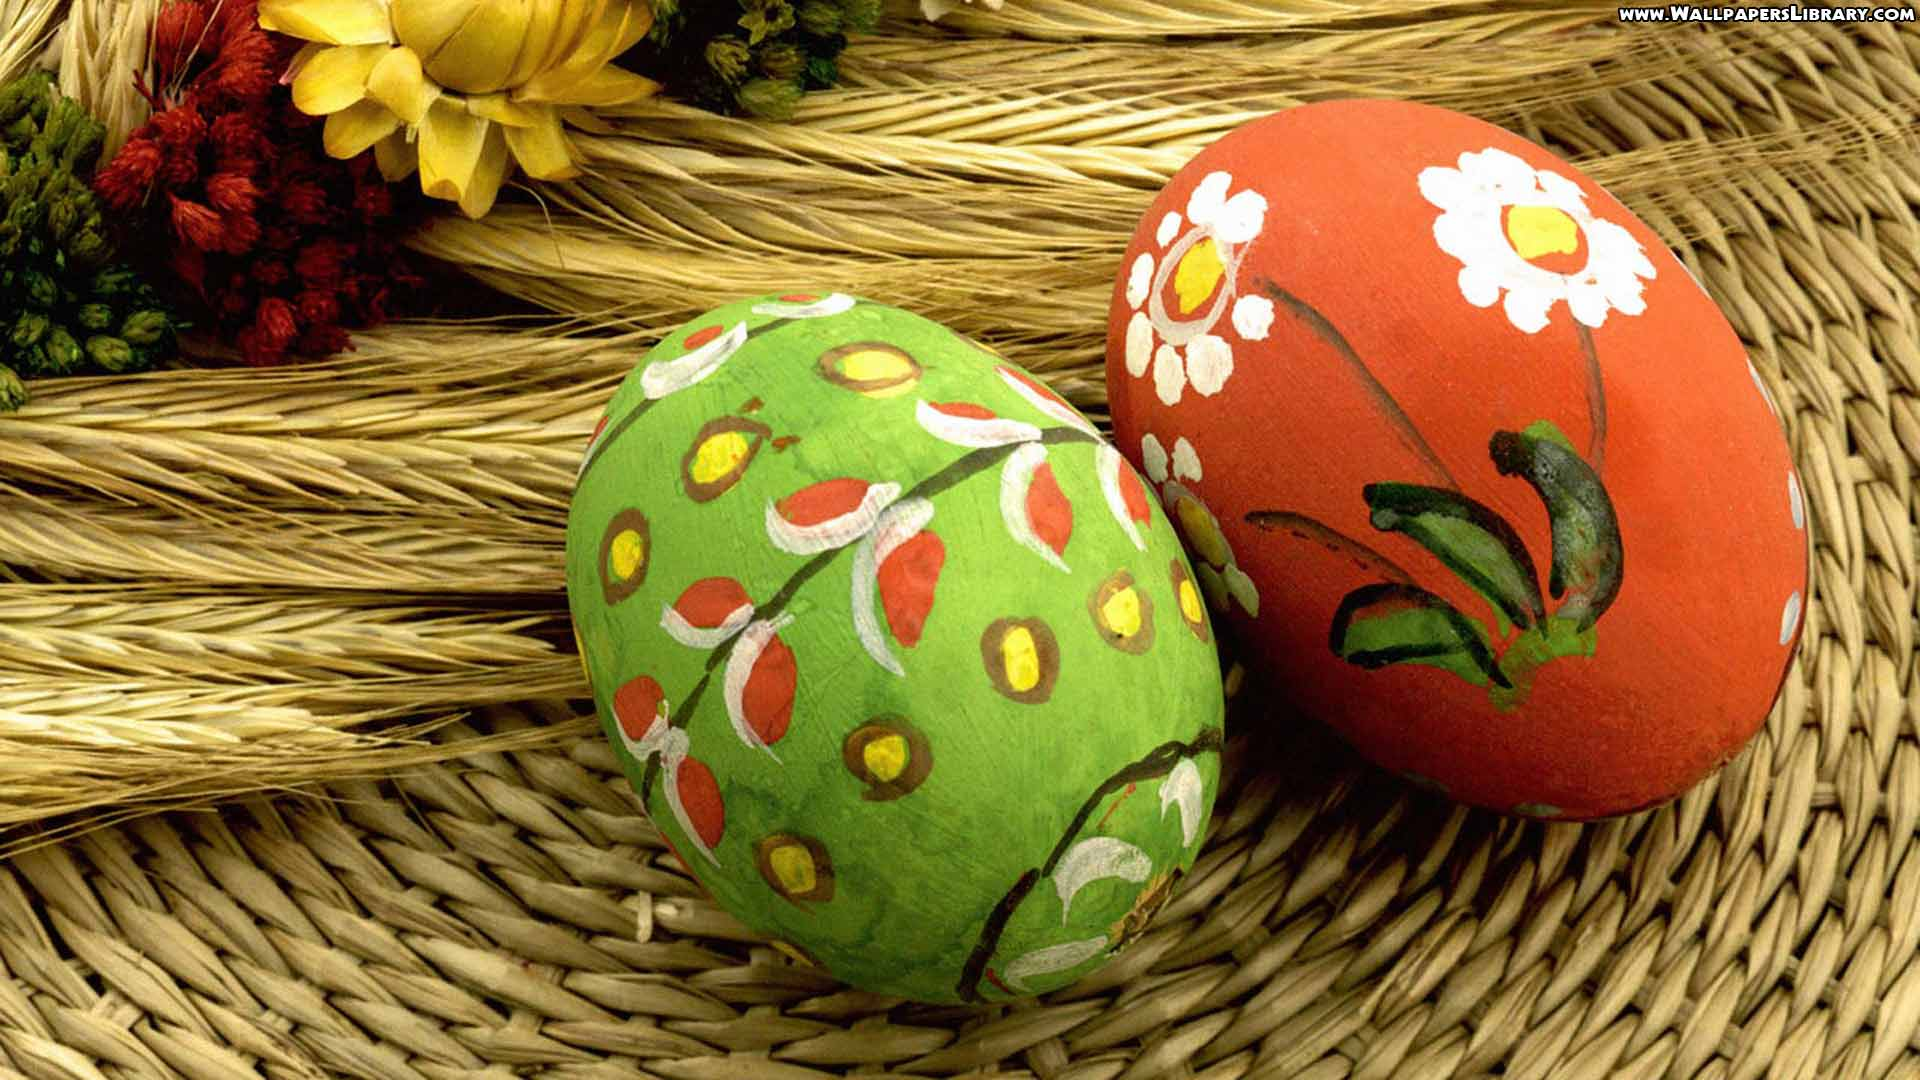 Easter Eggs Holiday Wallpapers Download HD Wallpapers 1920x1080